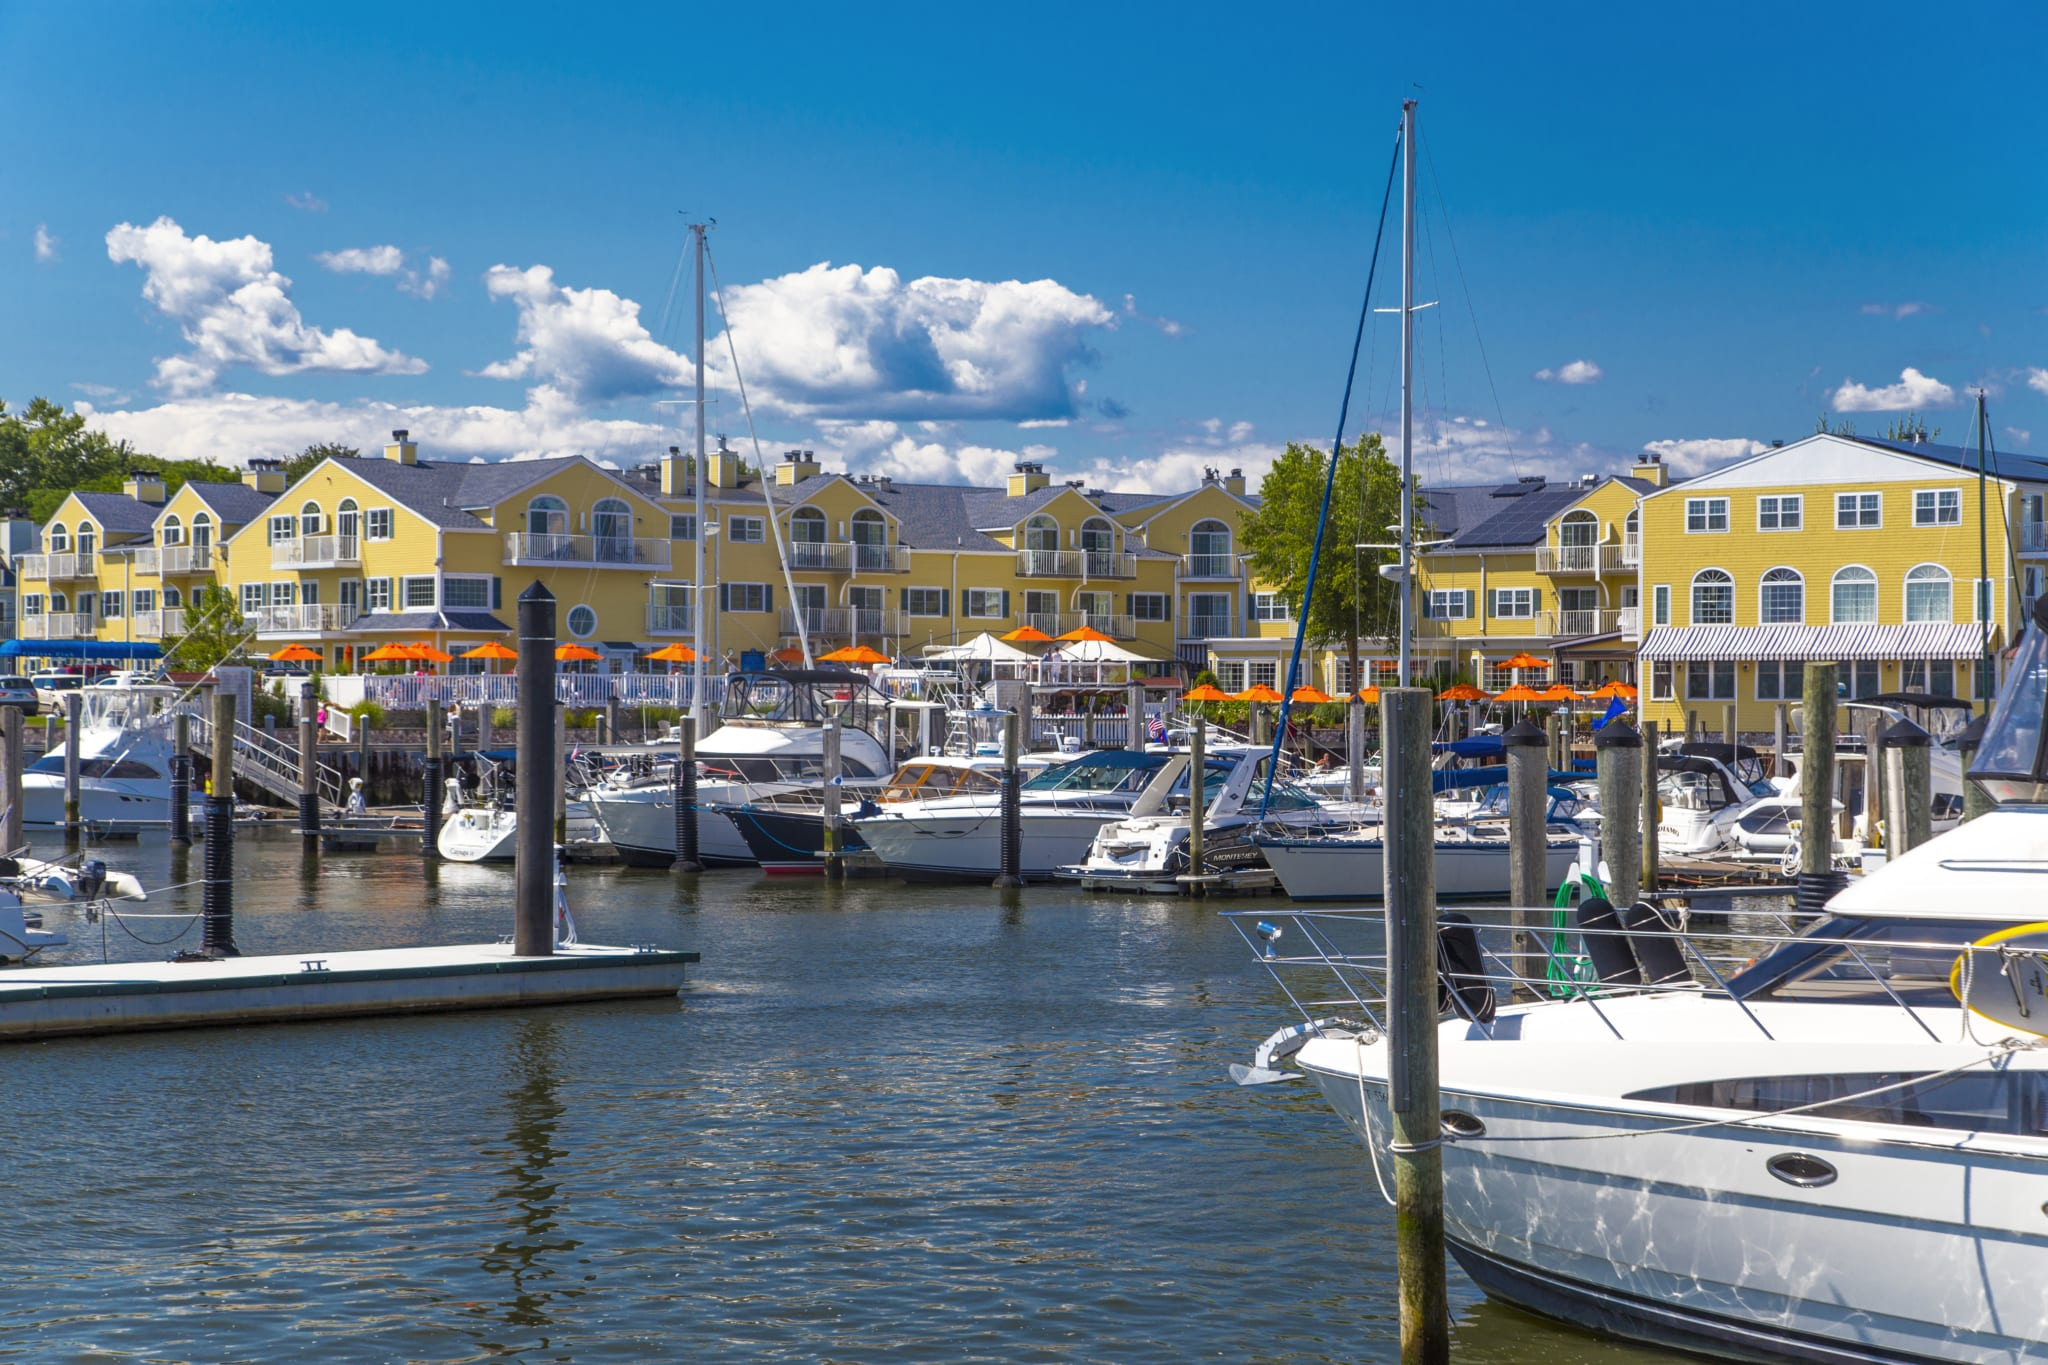 Boats in a marina in front of Saybrook Point Resort & Marina on a sunny day.